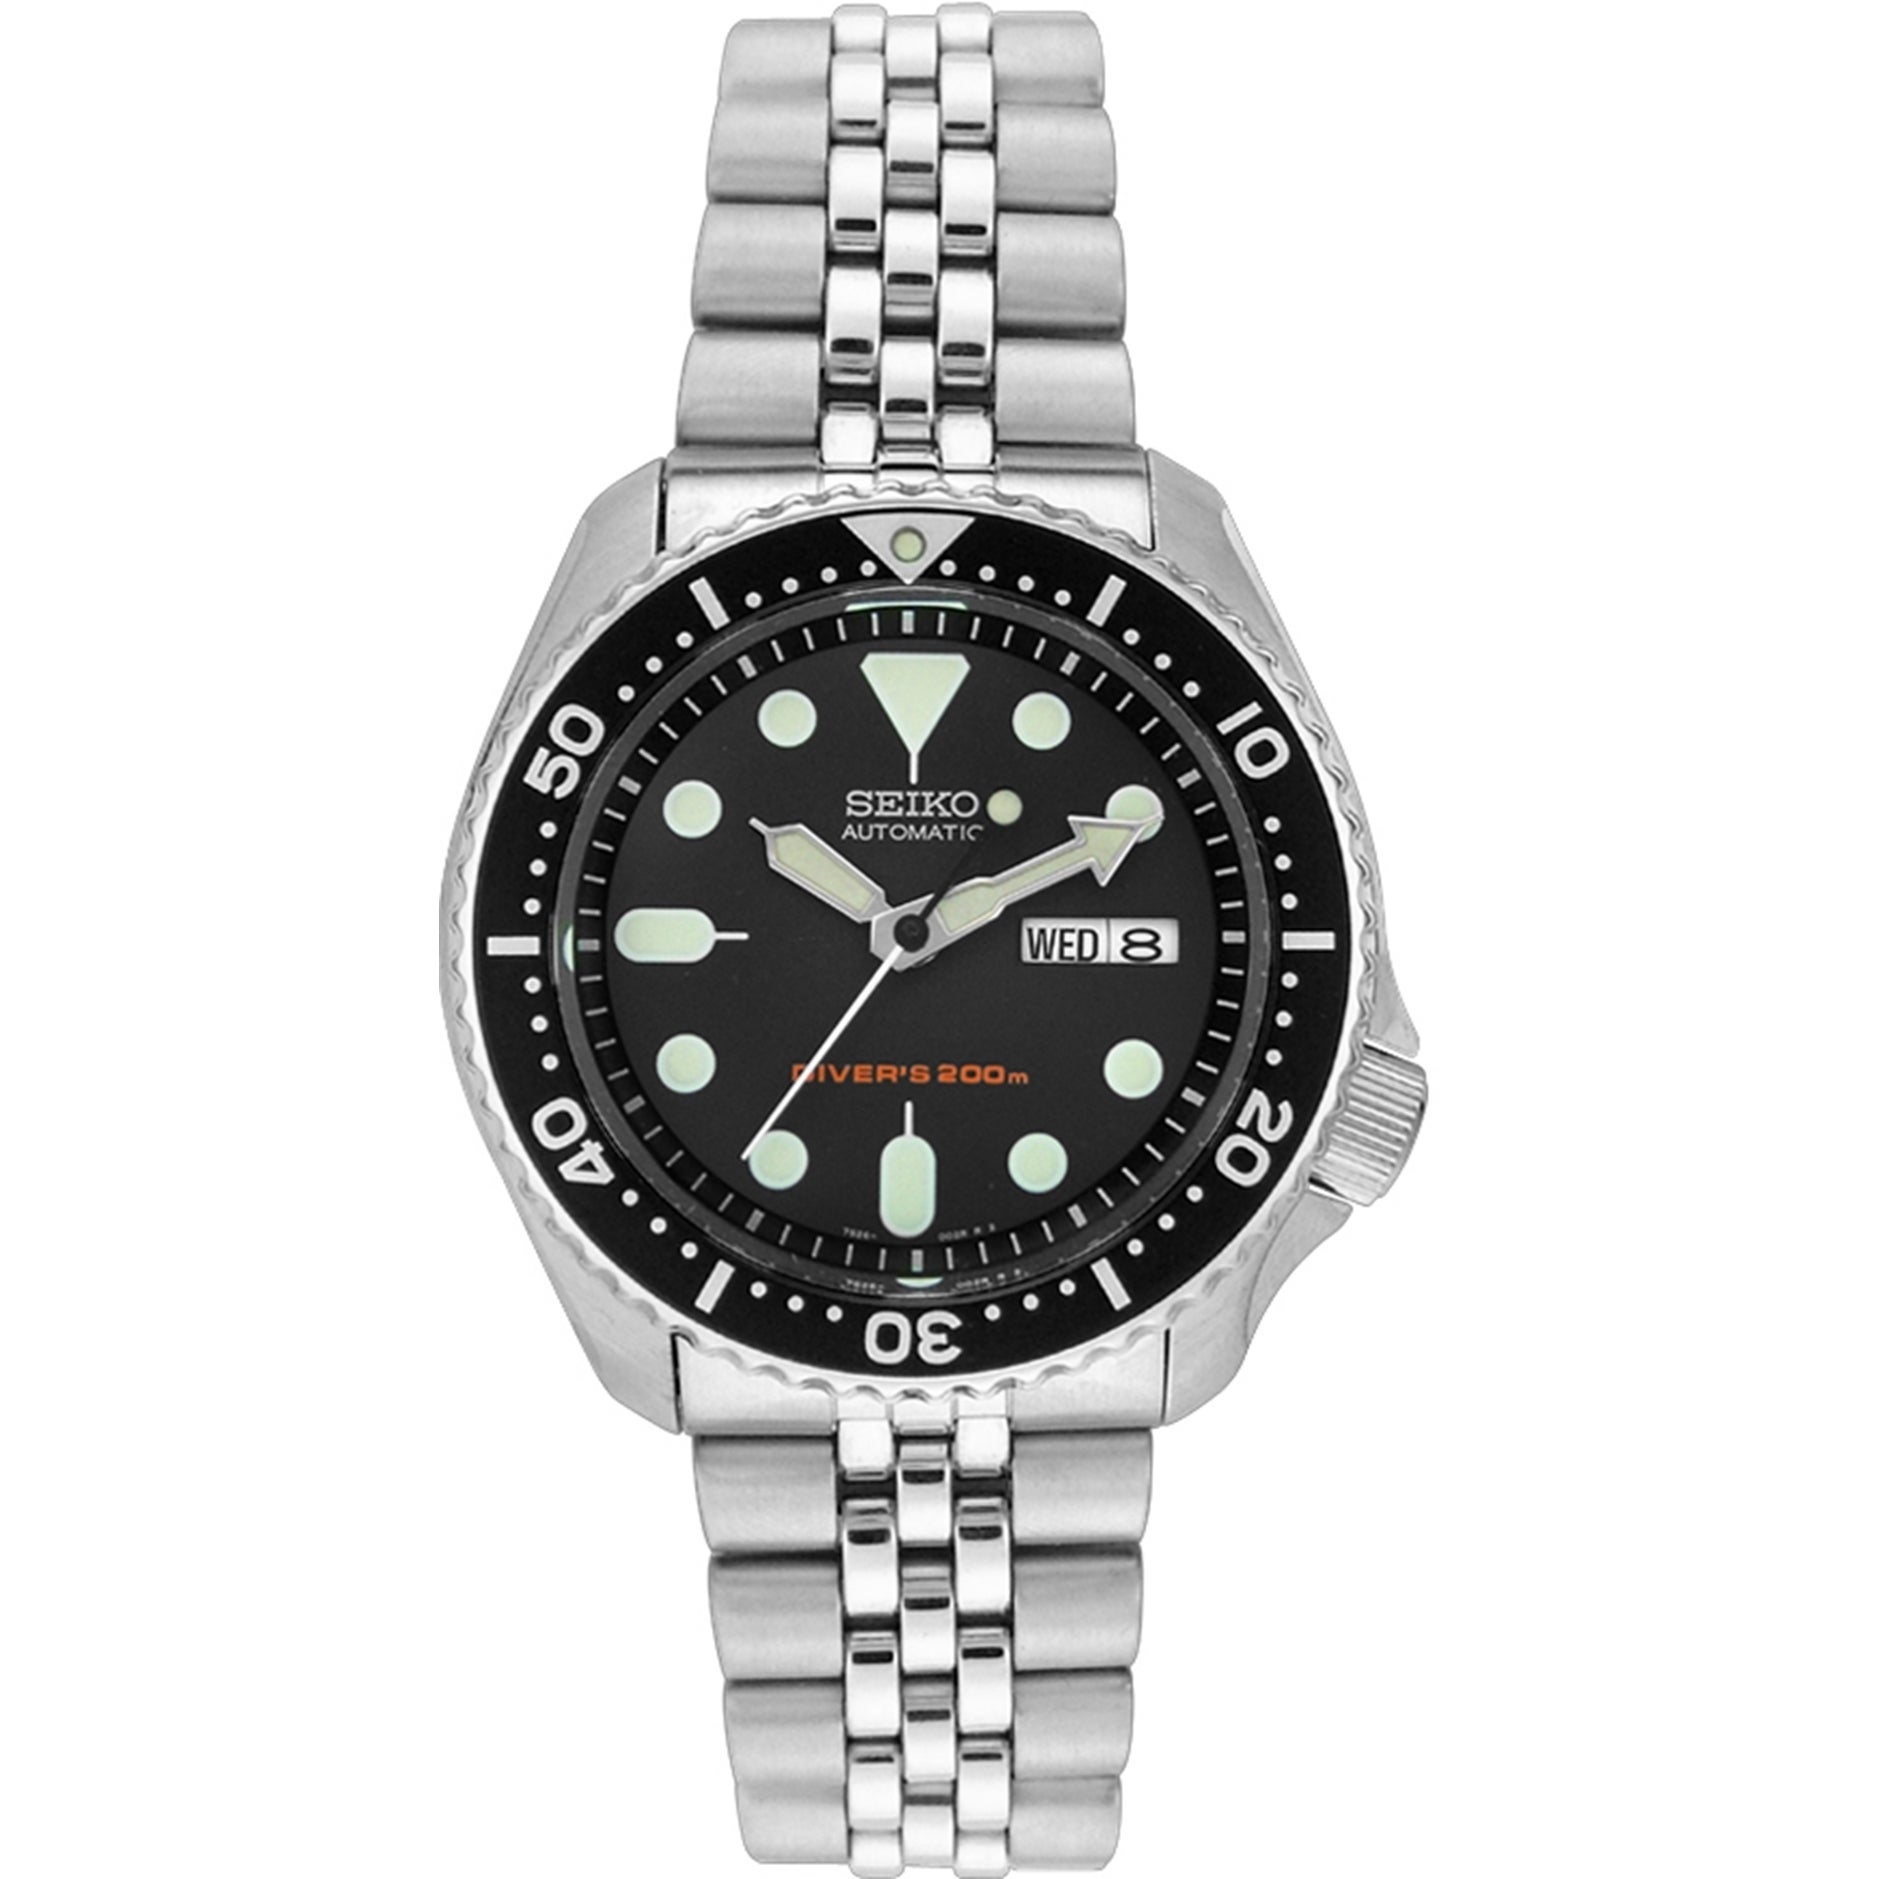 Shop Seiko Mens Skx007k2 Diver Day And Date Black Stainless Steel Automatic Divers 200m Dial Watch On Sale Free Shipping Today 8459139